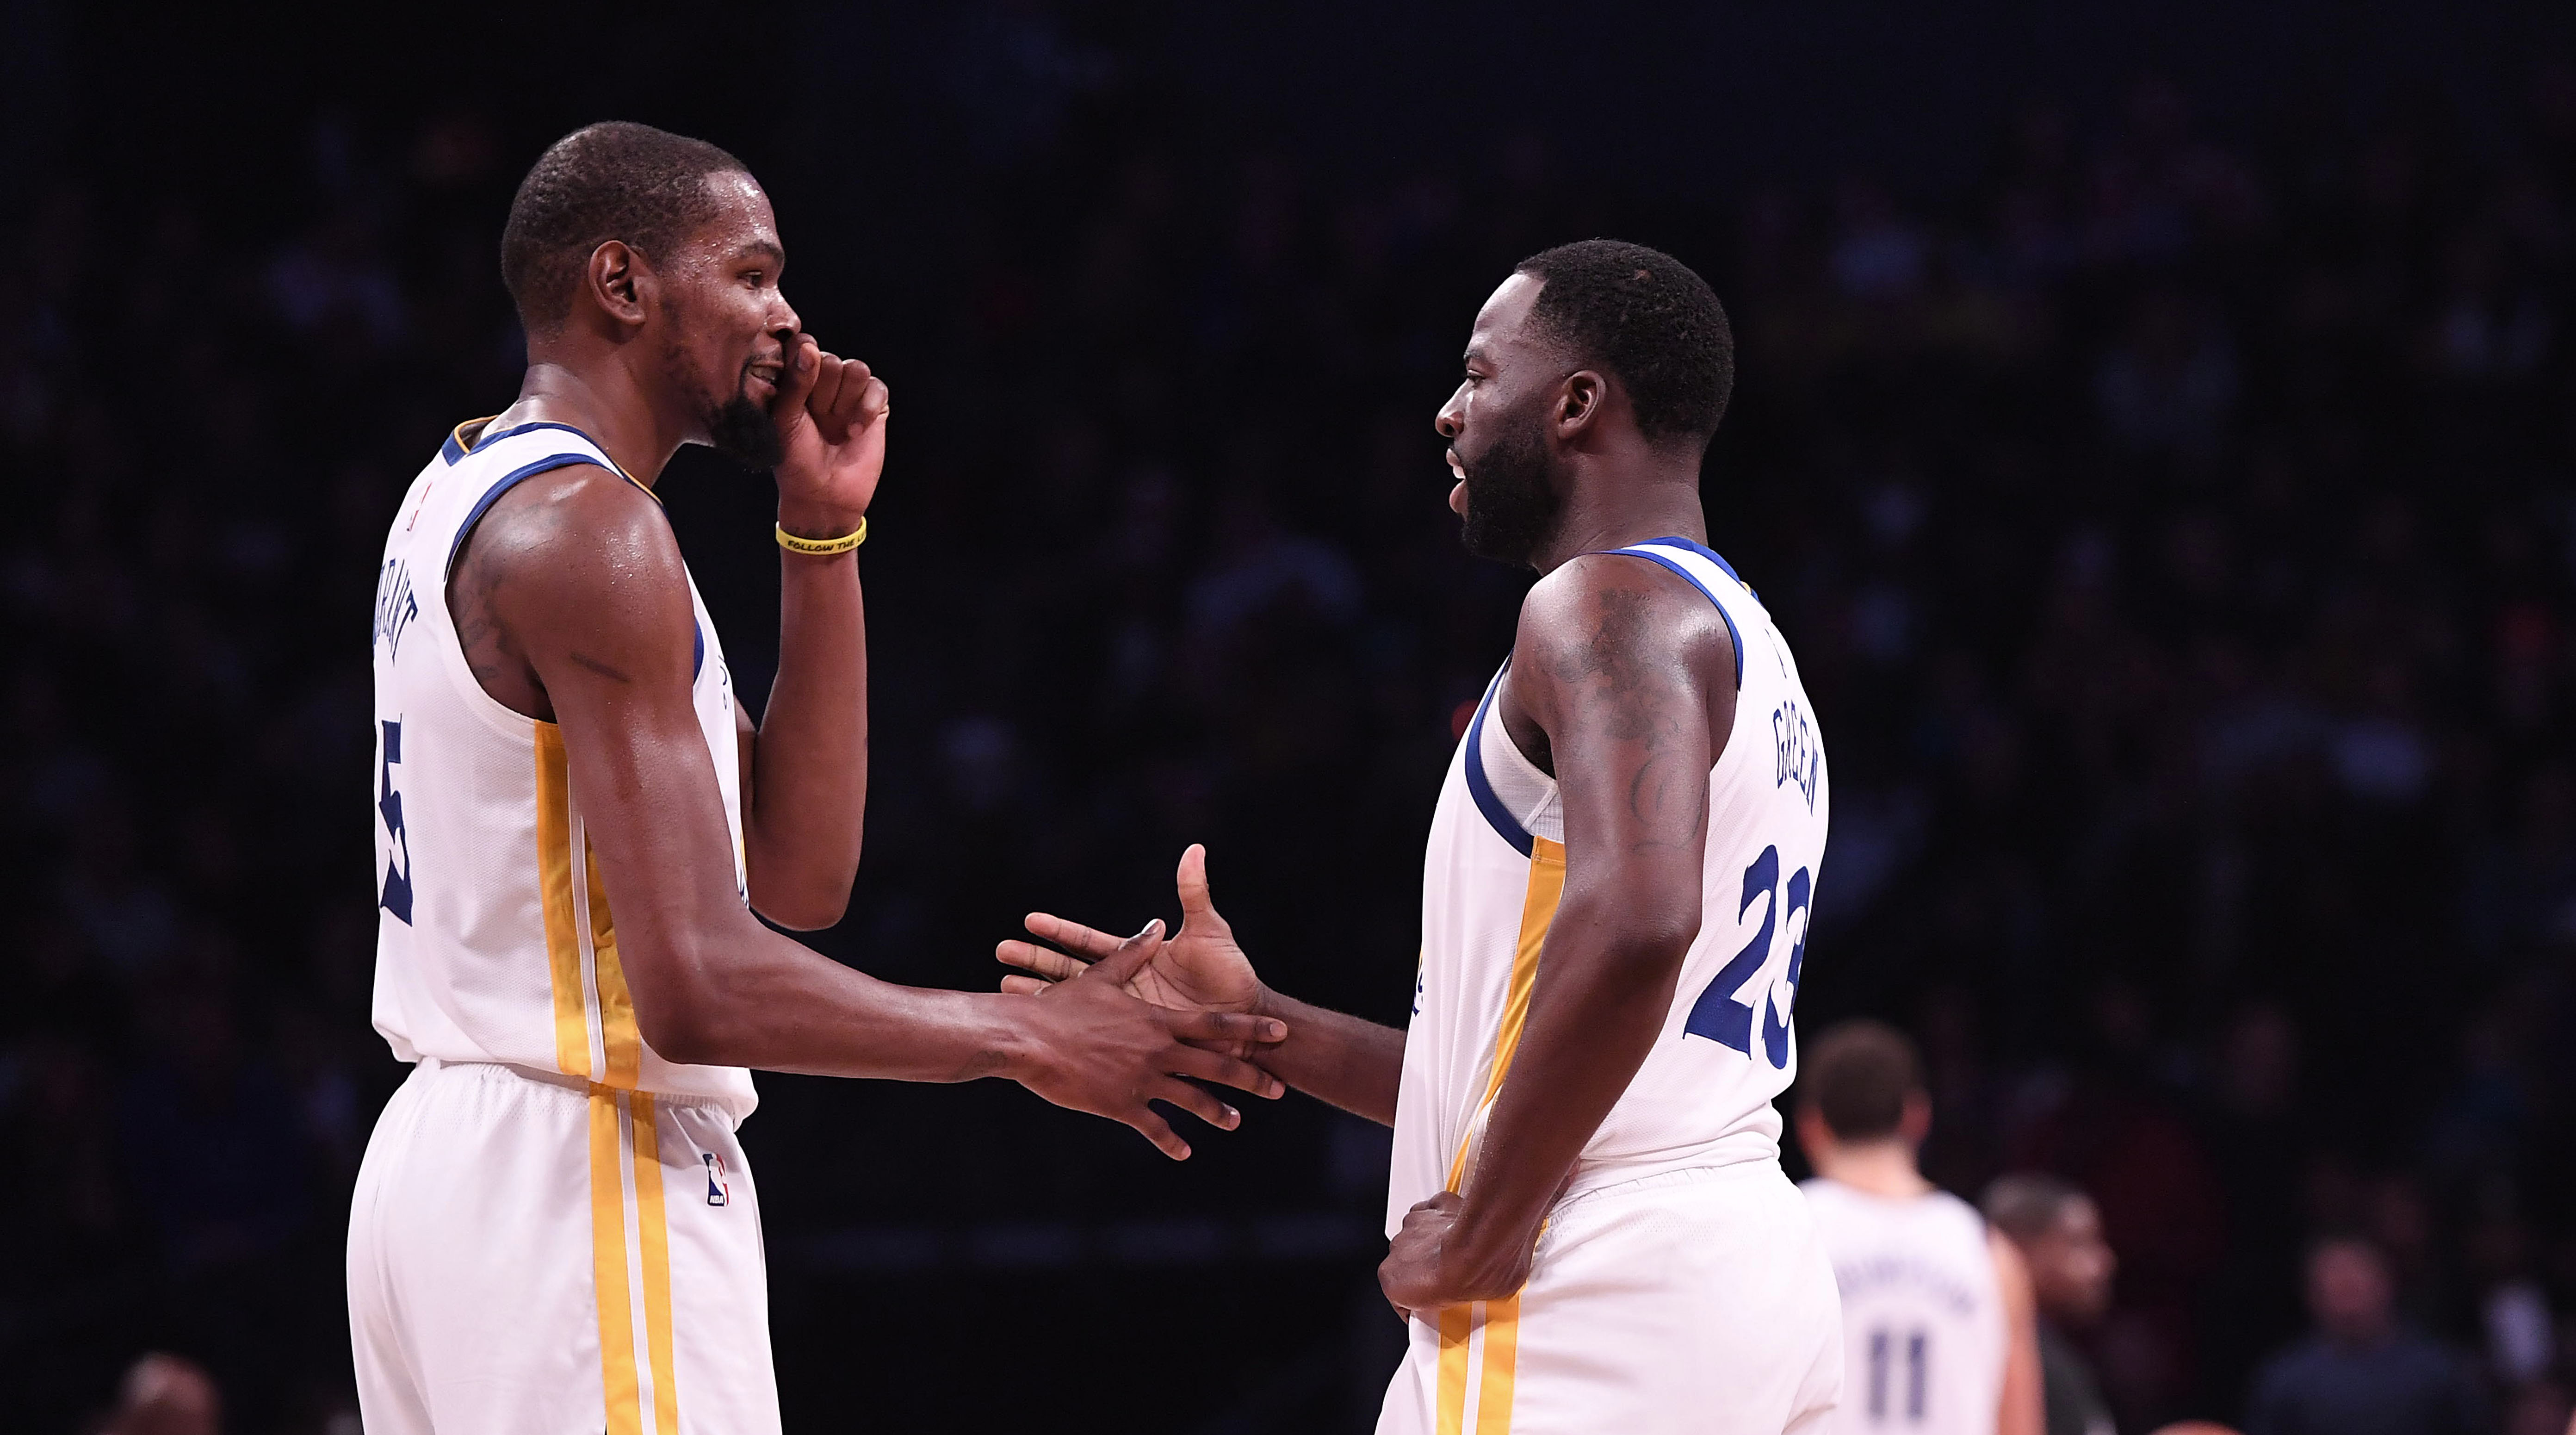 Kevin Durant Draymond Green argument wont affect free agency